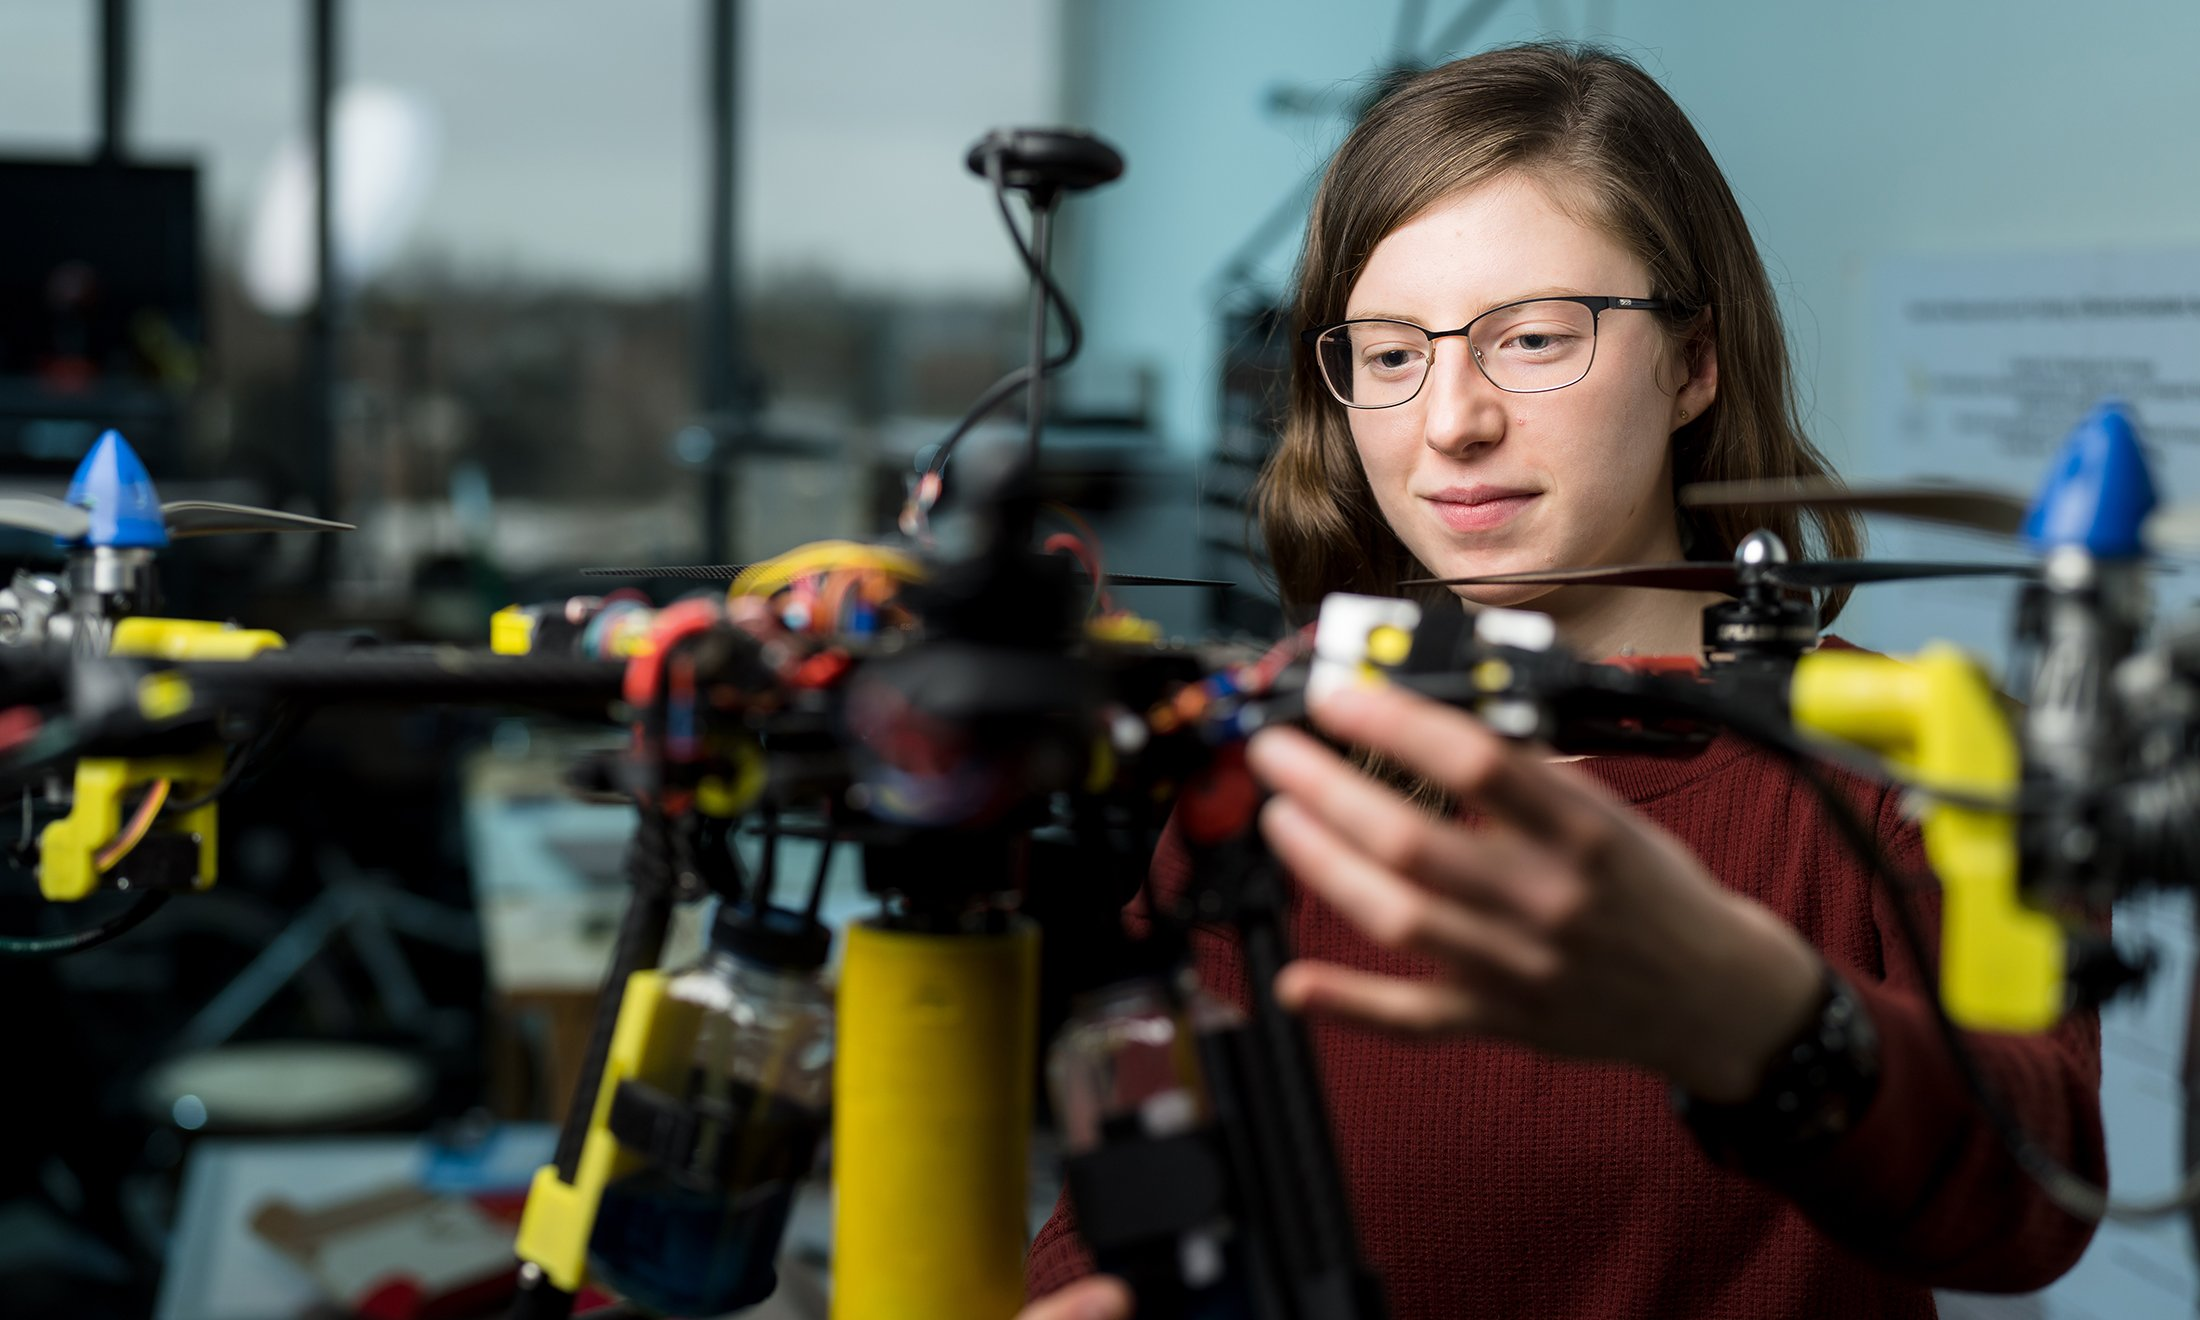 A woman working on a drone.